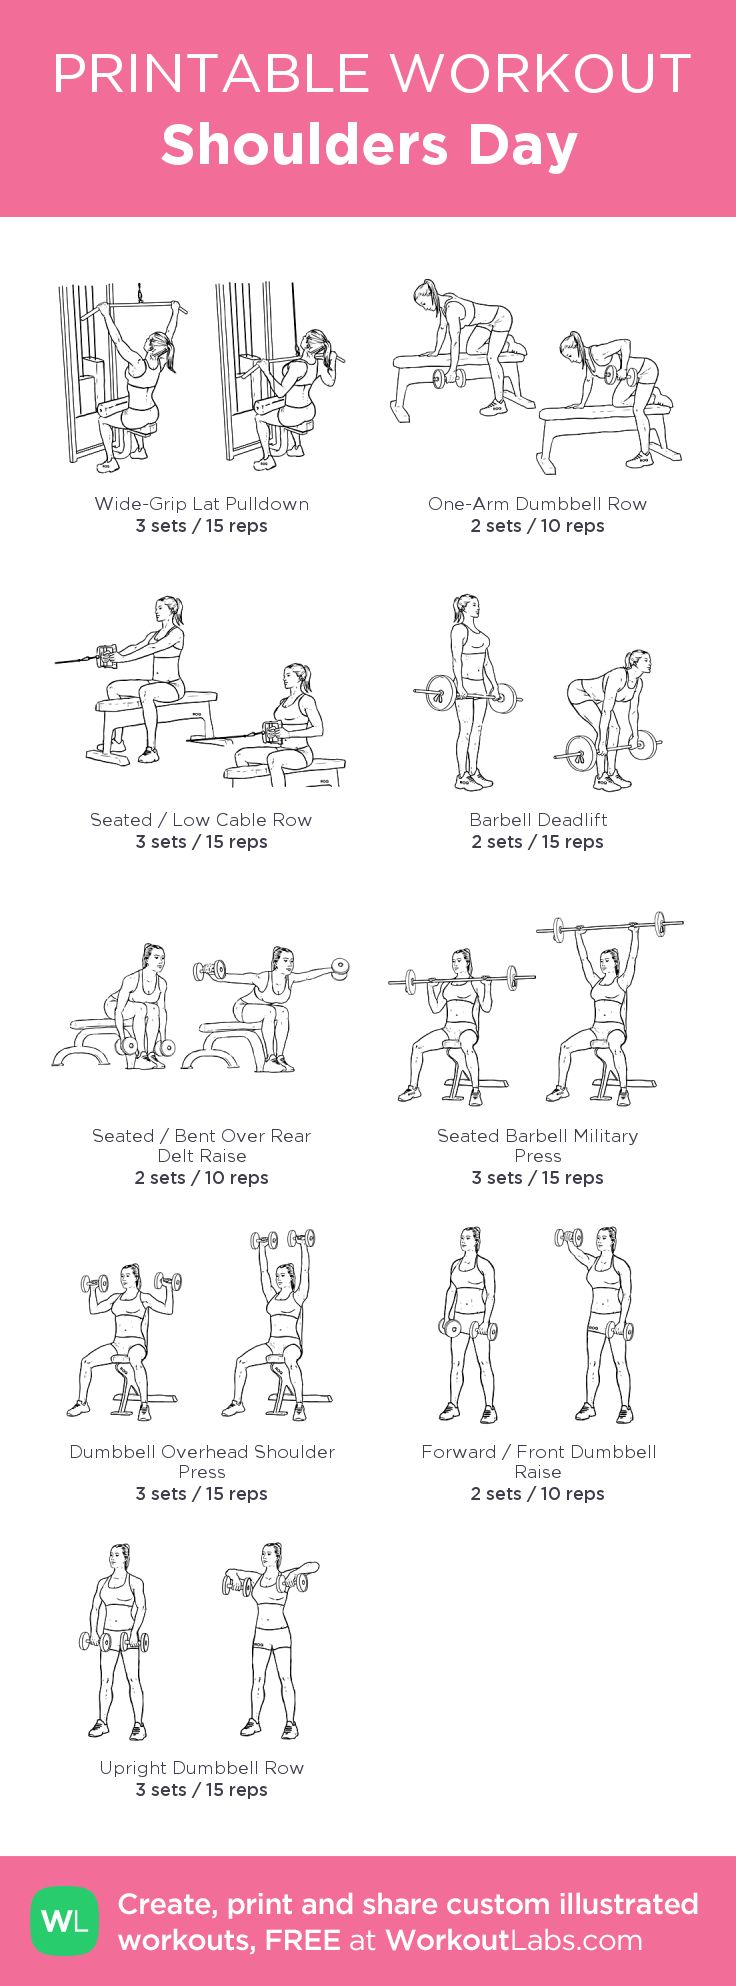 how to build chest and arms at home